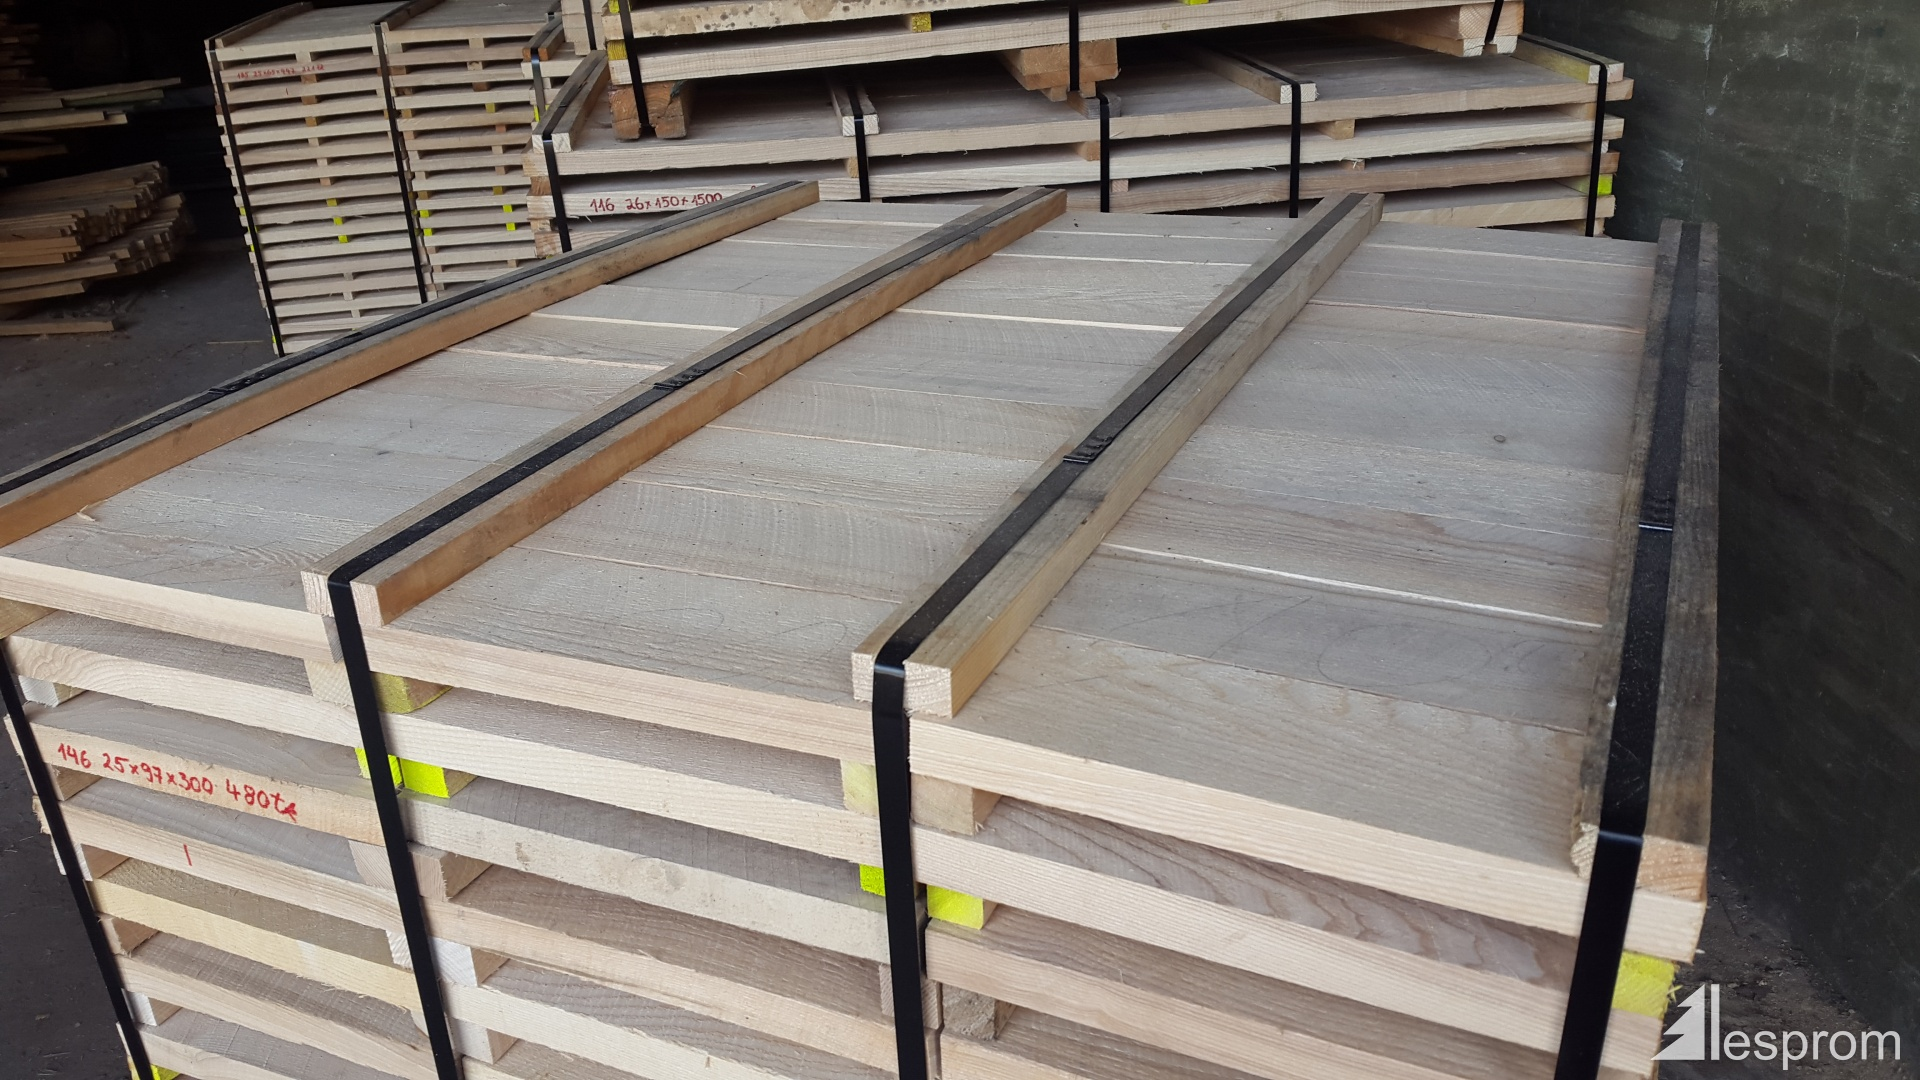 Lumber ash 27 mm x 190 mm x 4 m for 4 8 meter decking boards